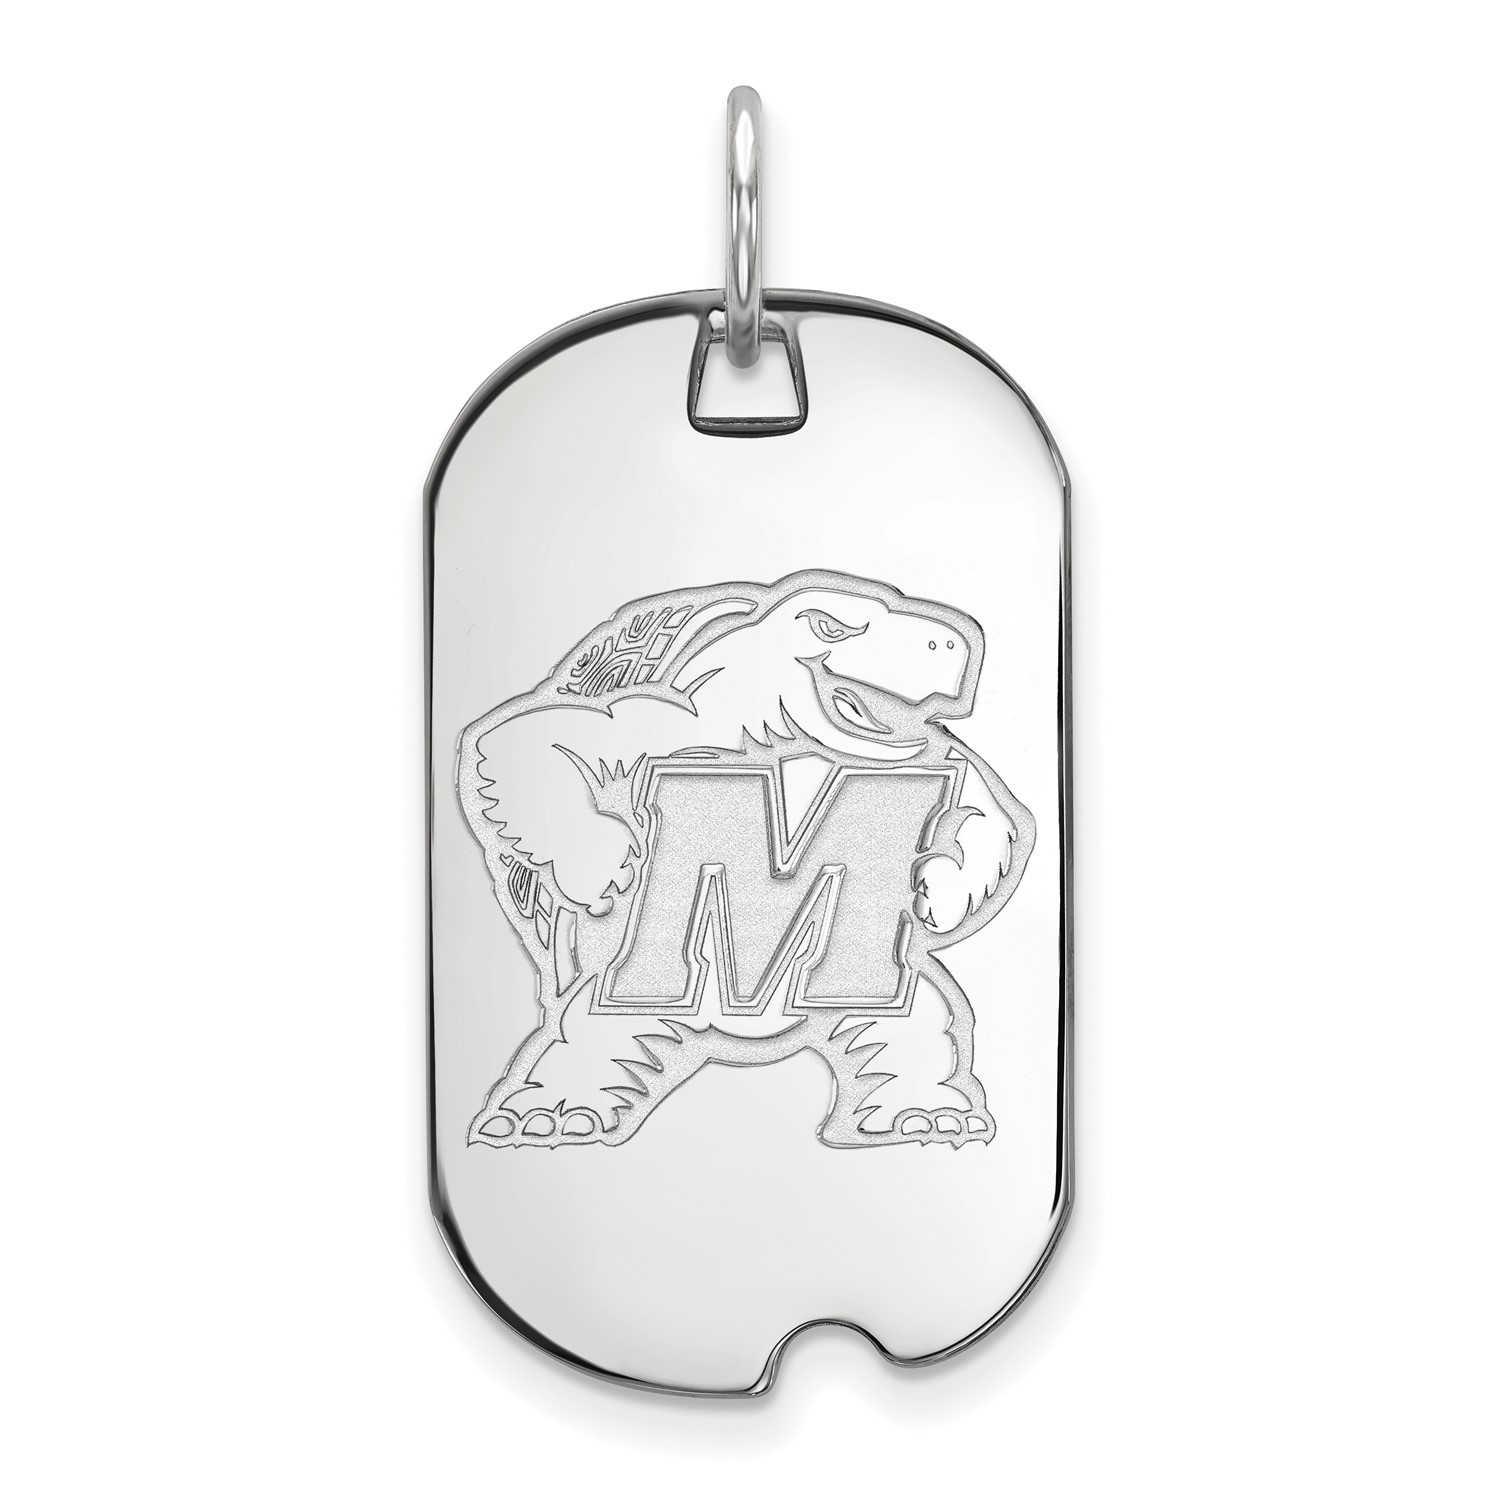 14k White gold LogoArt Licensed Collegiate University of Maryland Small Dog Tag